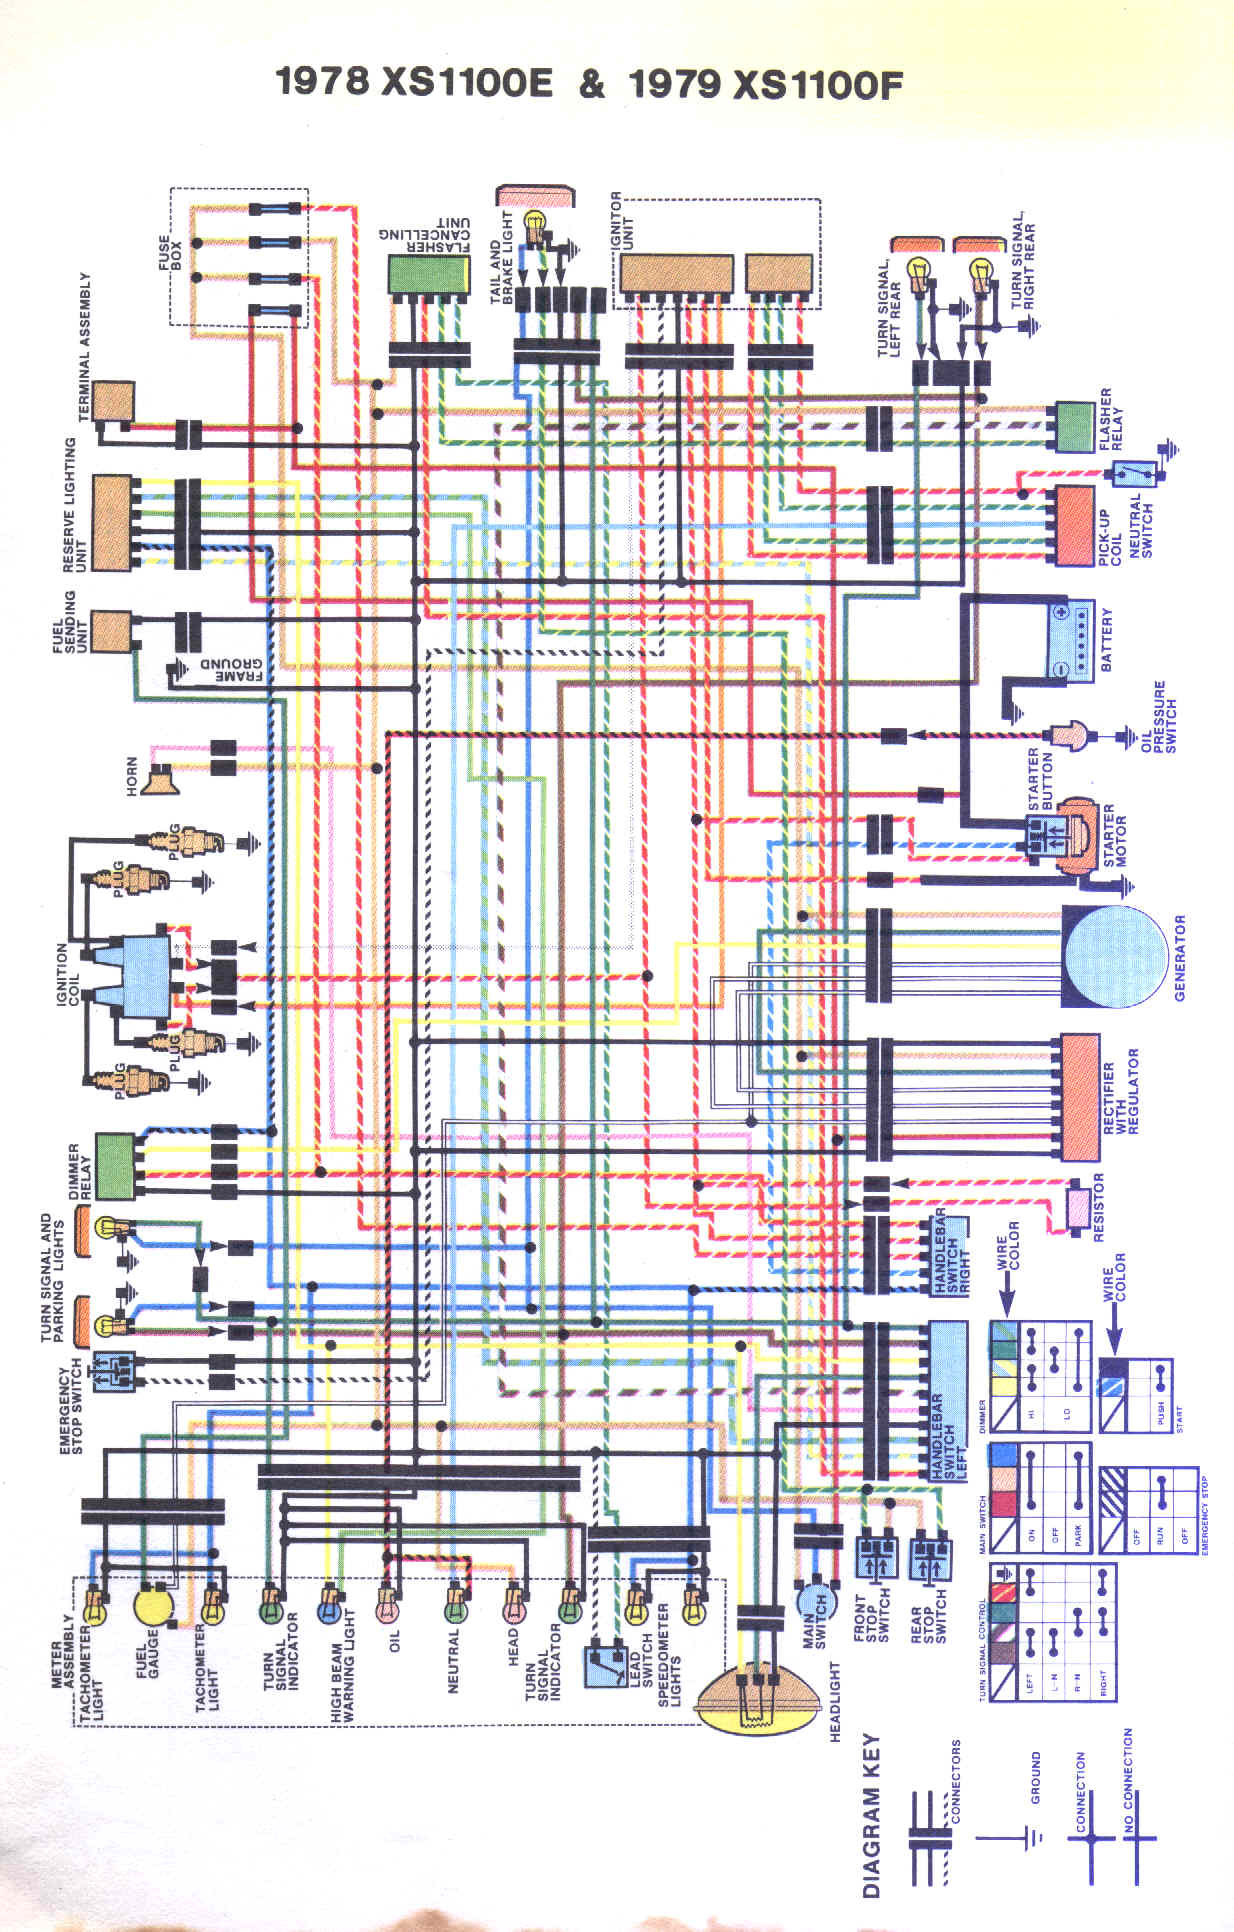 Wiring Diagrams 1980 Chevy Ignition Diagram 197879 Xs11